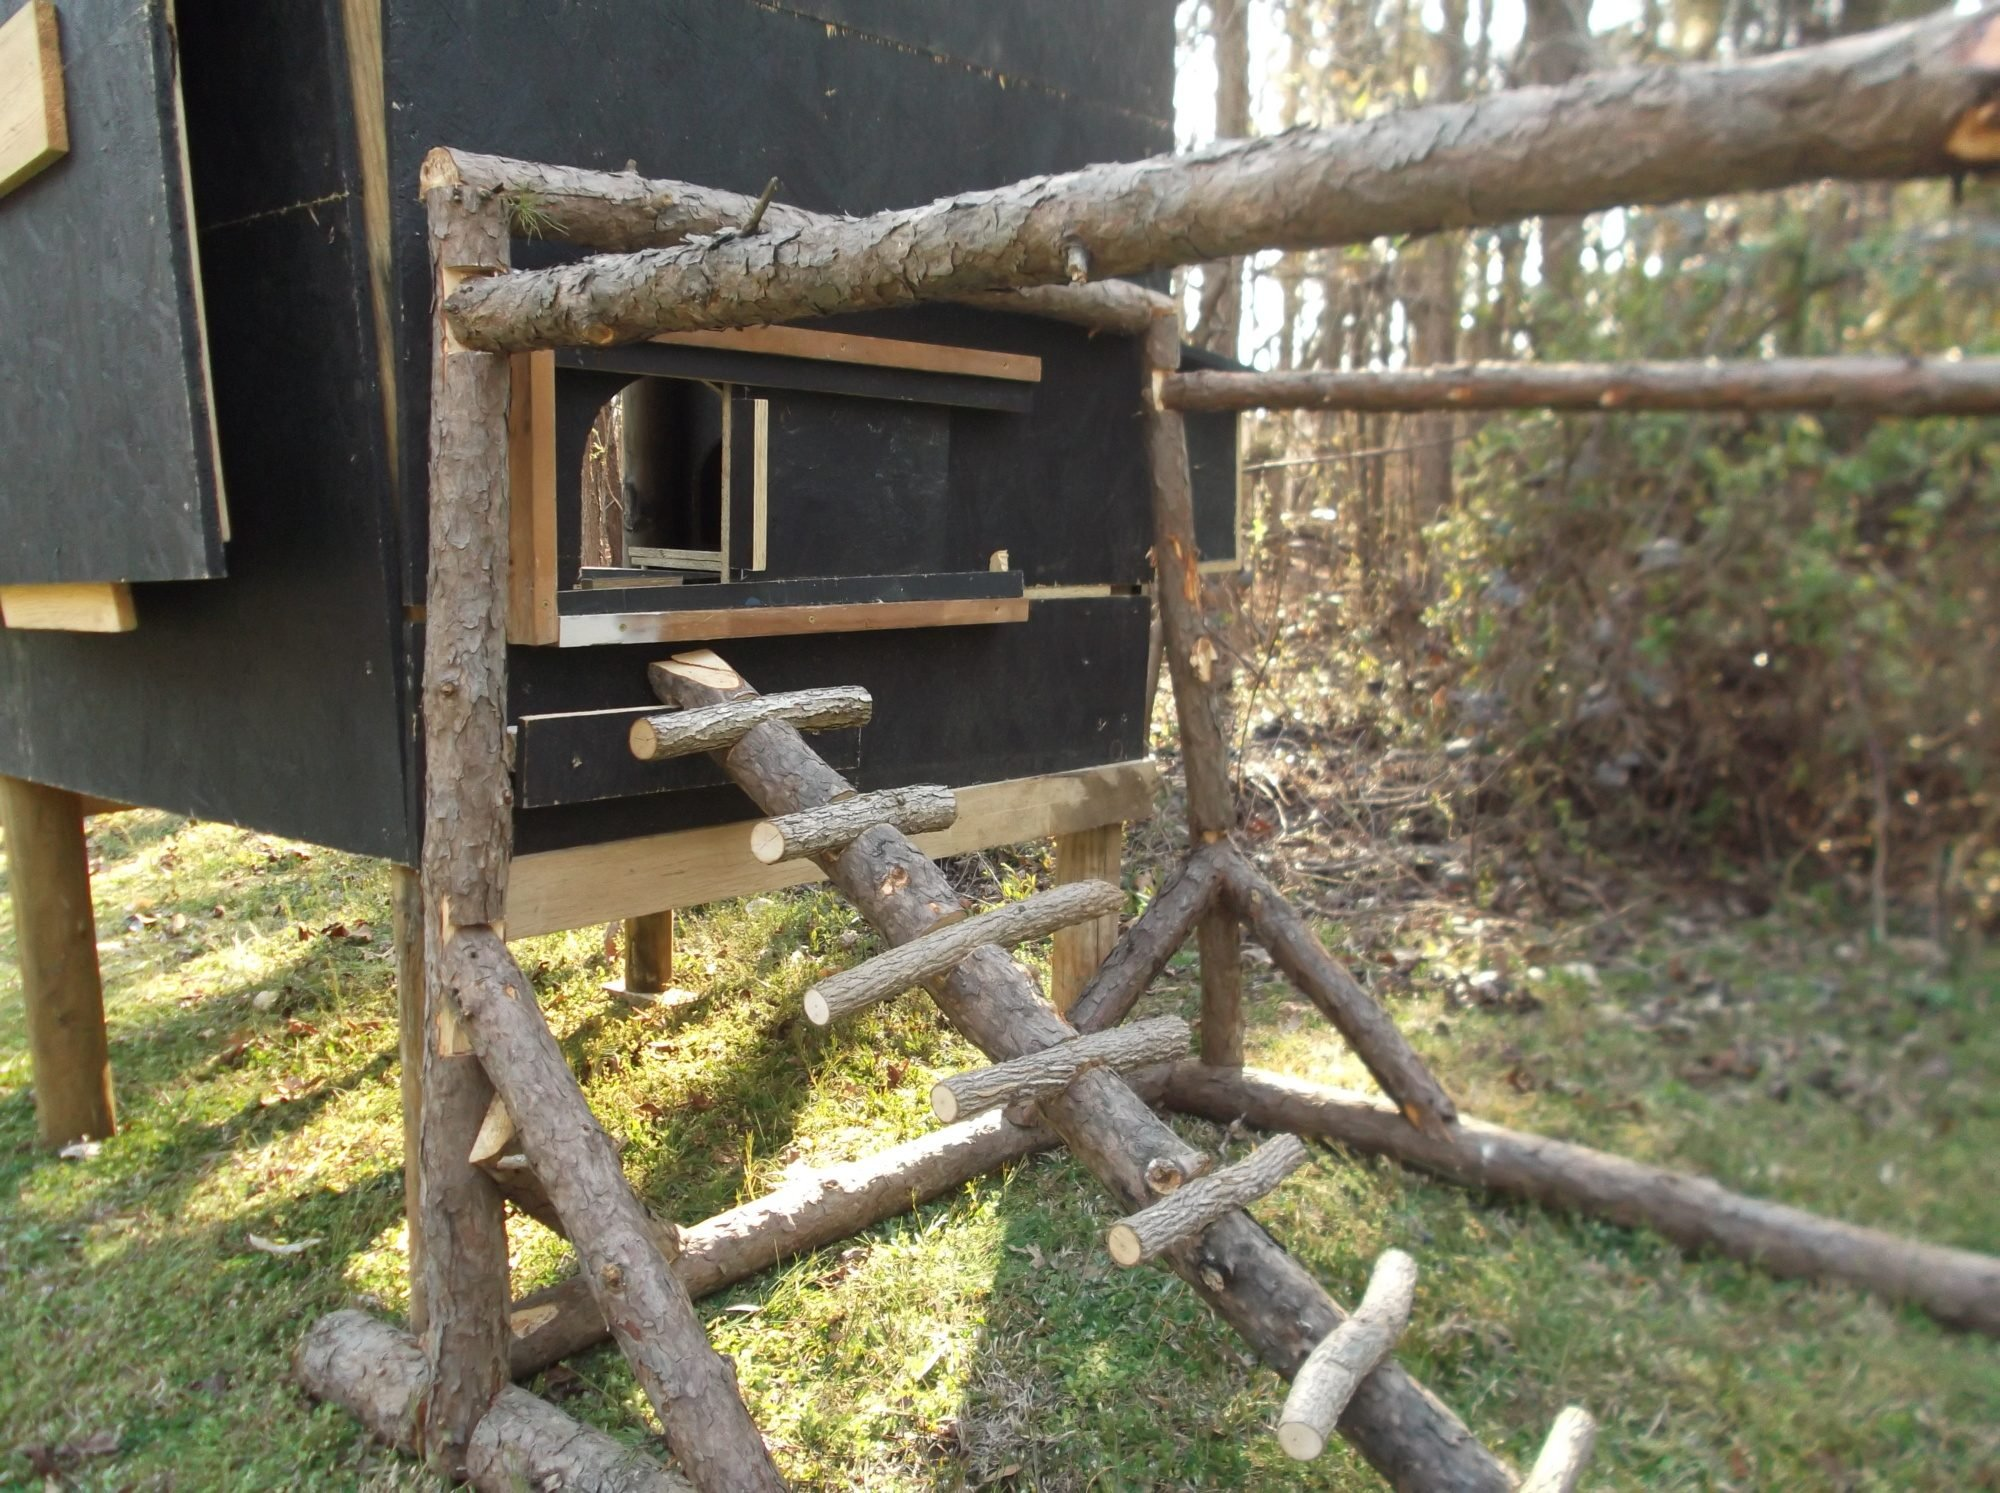 i made the ladder out of scrapplings from trees